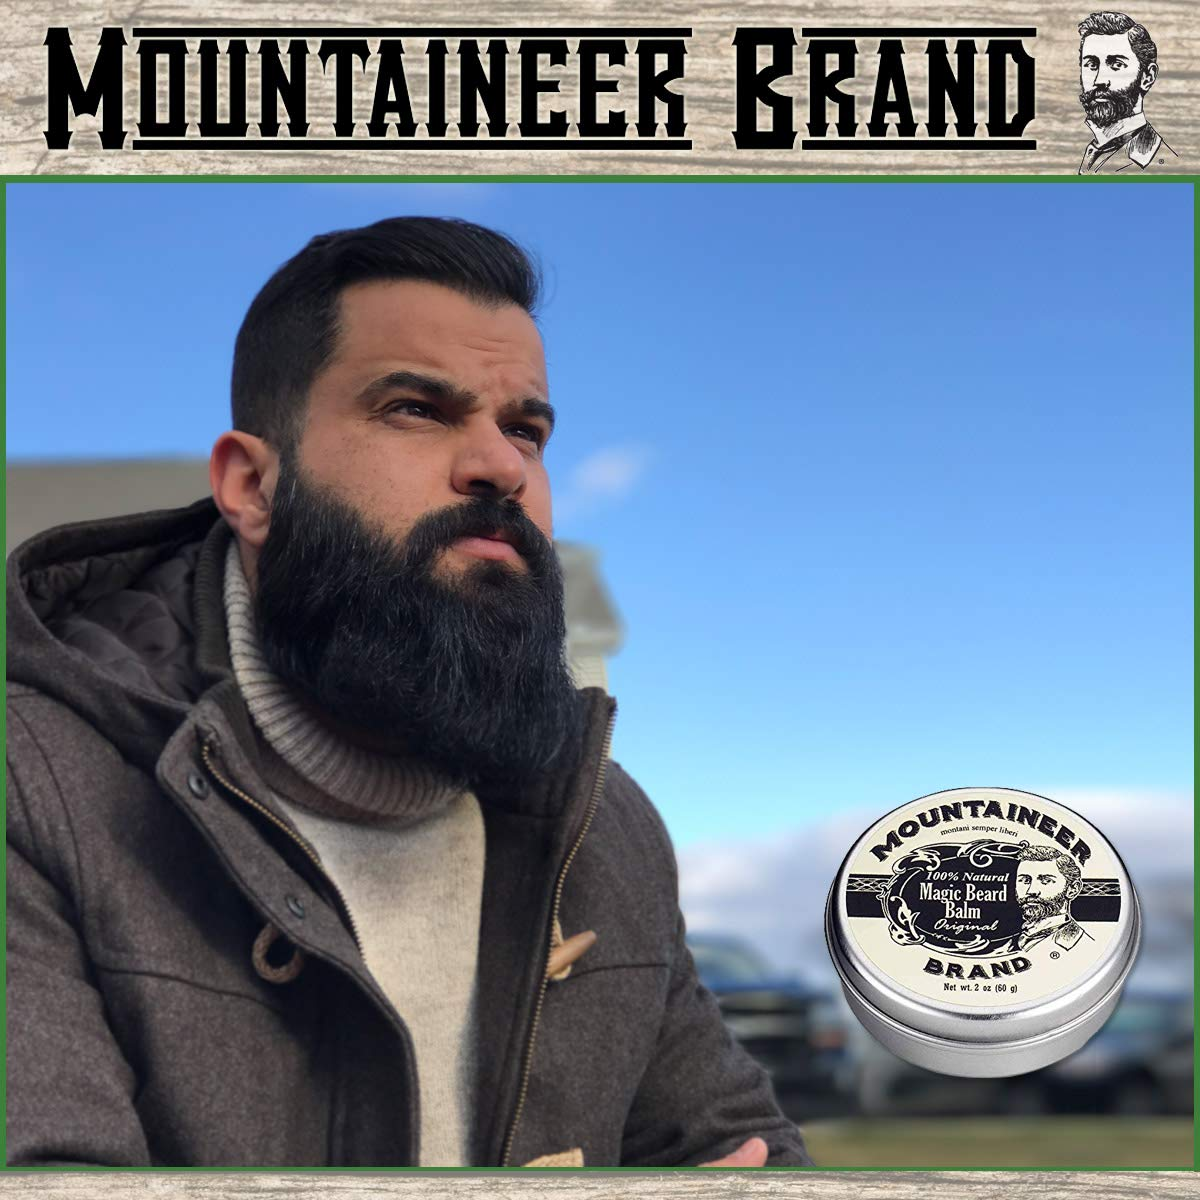 Beard Grooming Care Kit for Men by Mountaineer Brand | Beard Oil (2oz),  Conditioning Balm (2oz),